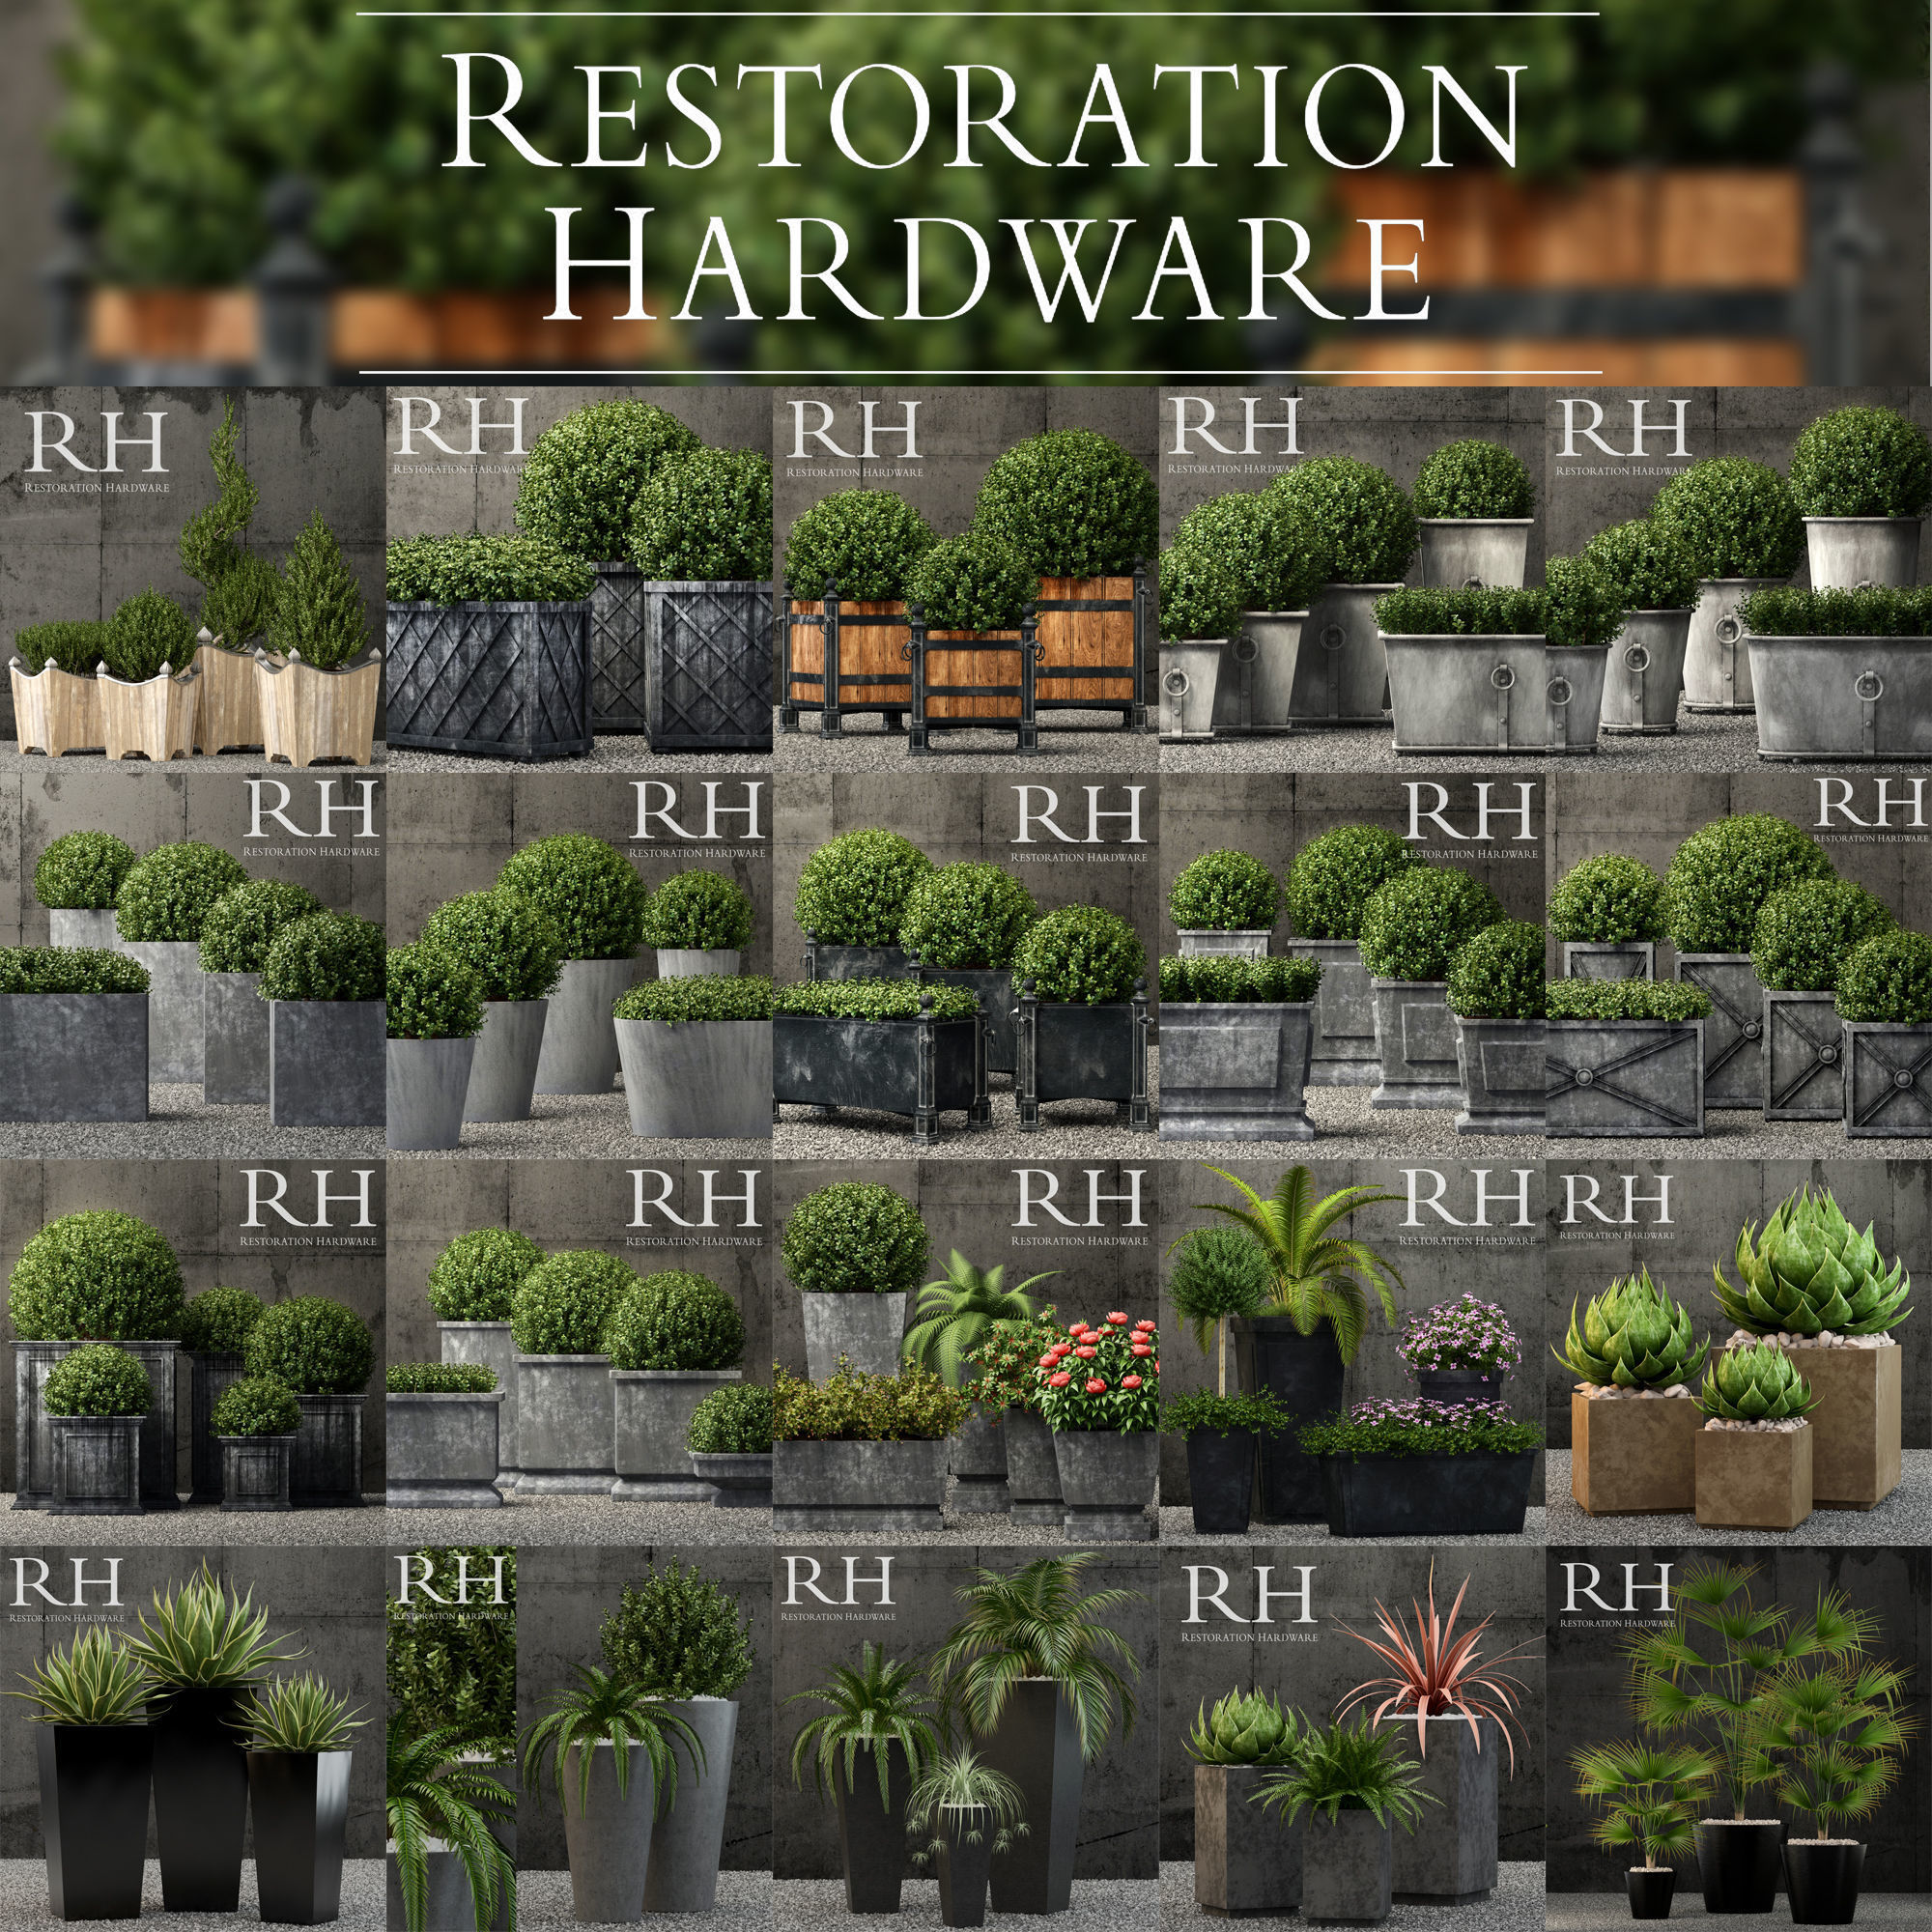 Plants vol 1 restoration hardware planters